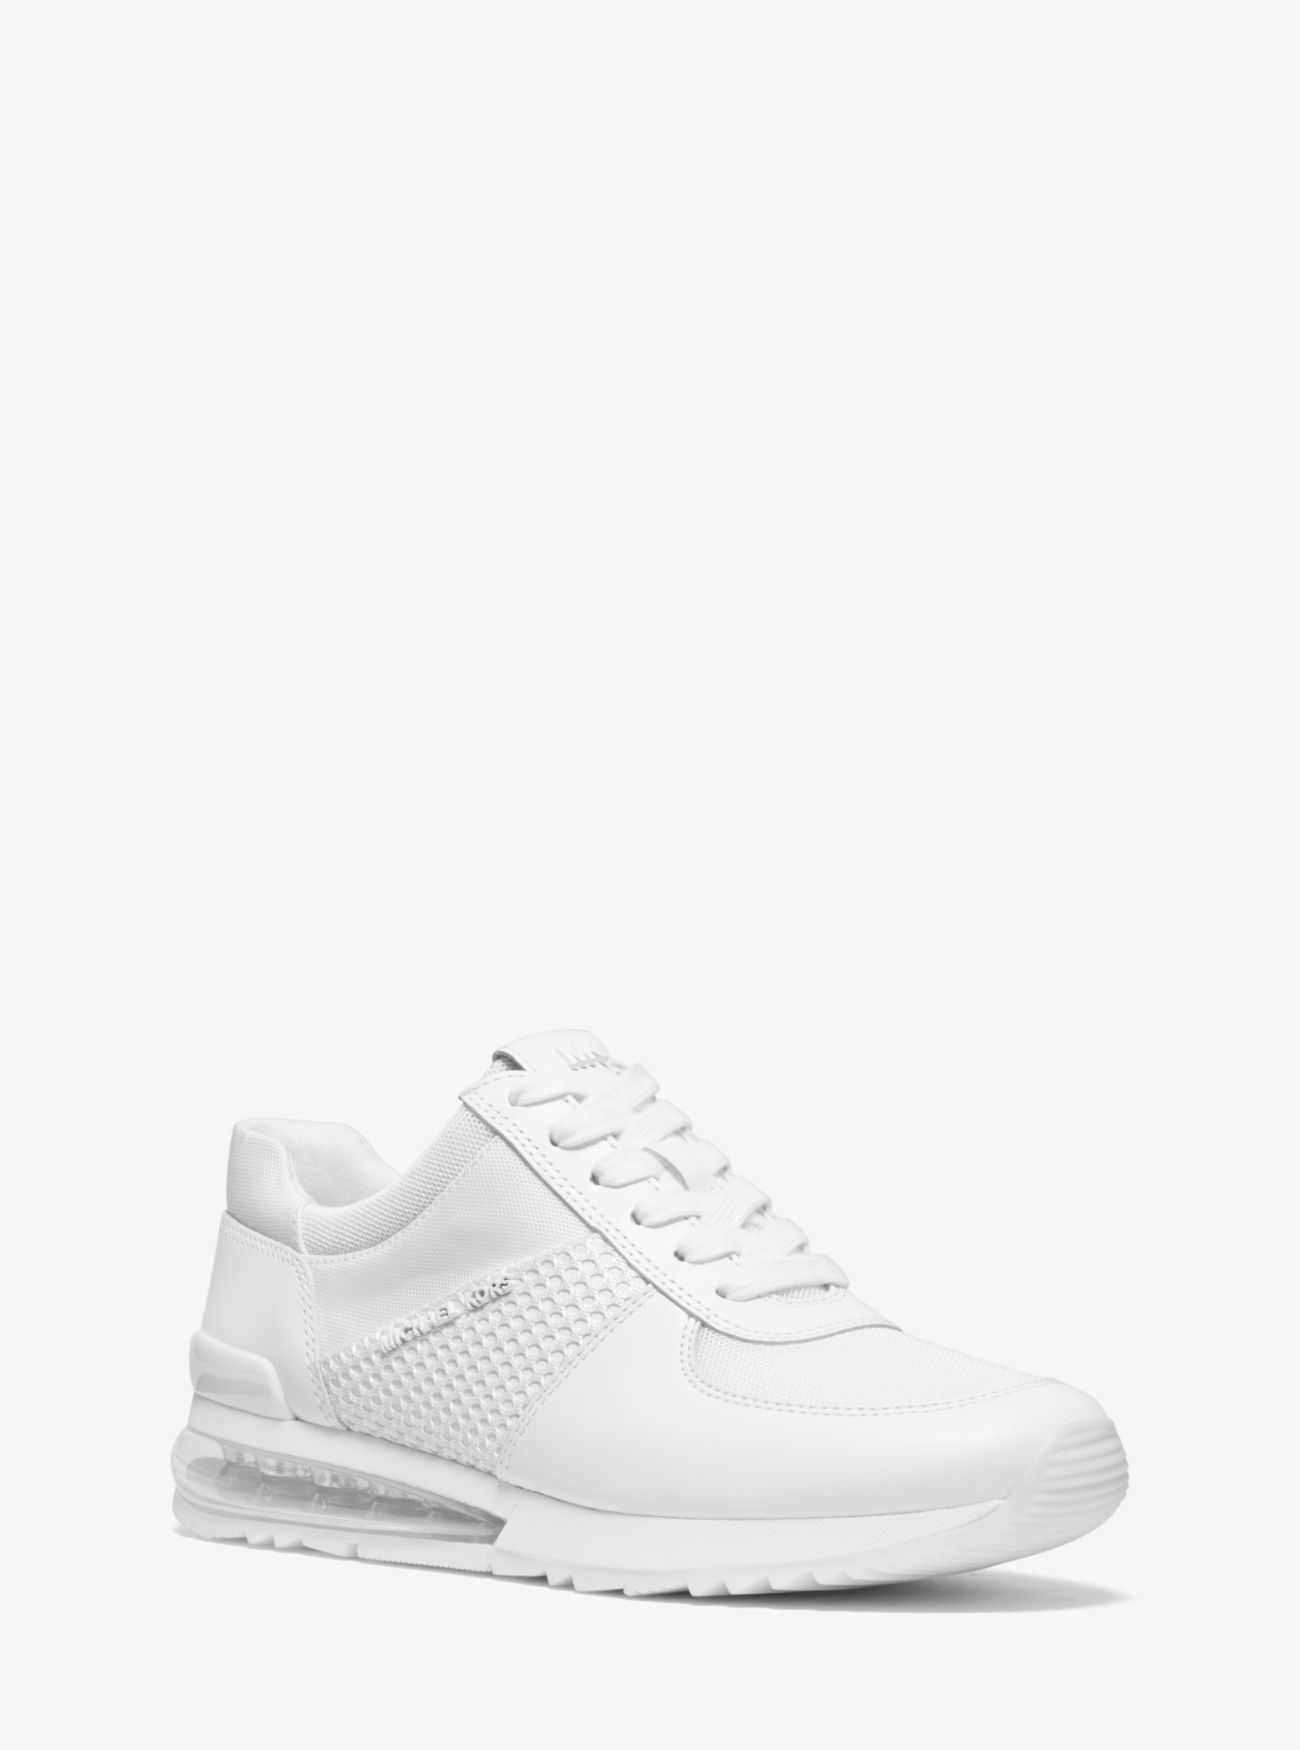 Sneaker Allie Extreme in materiale misto ... f4dfe903a8c